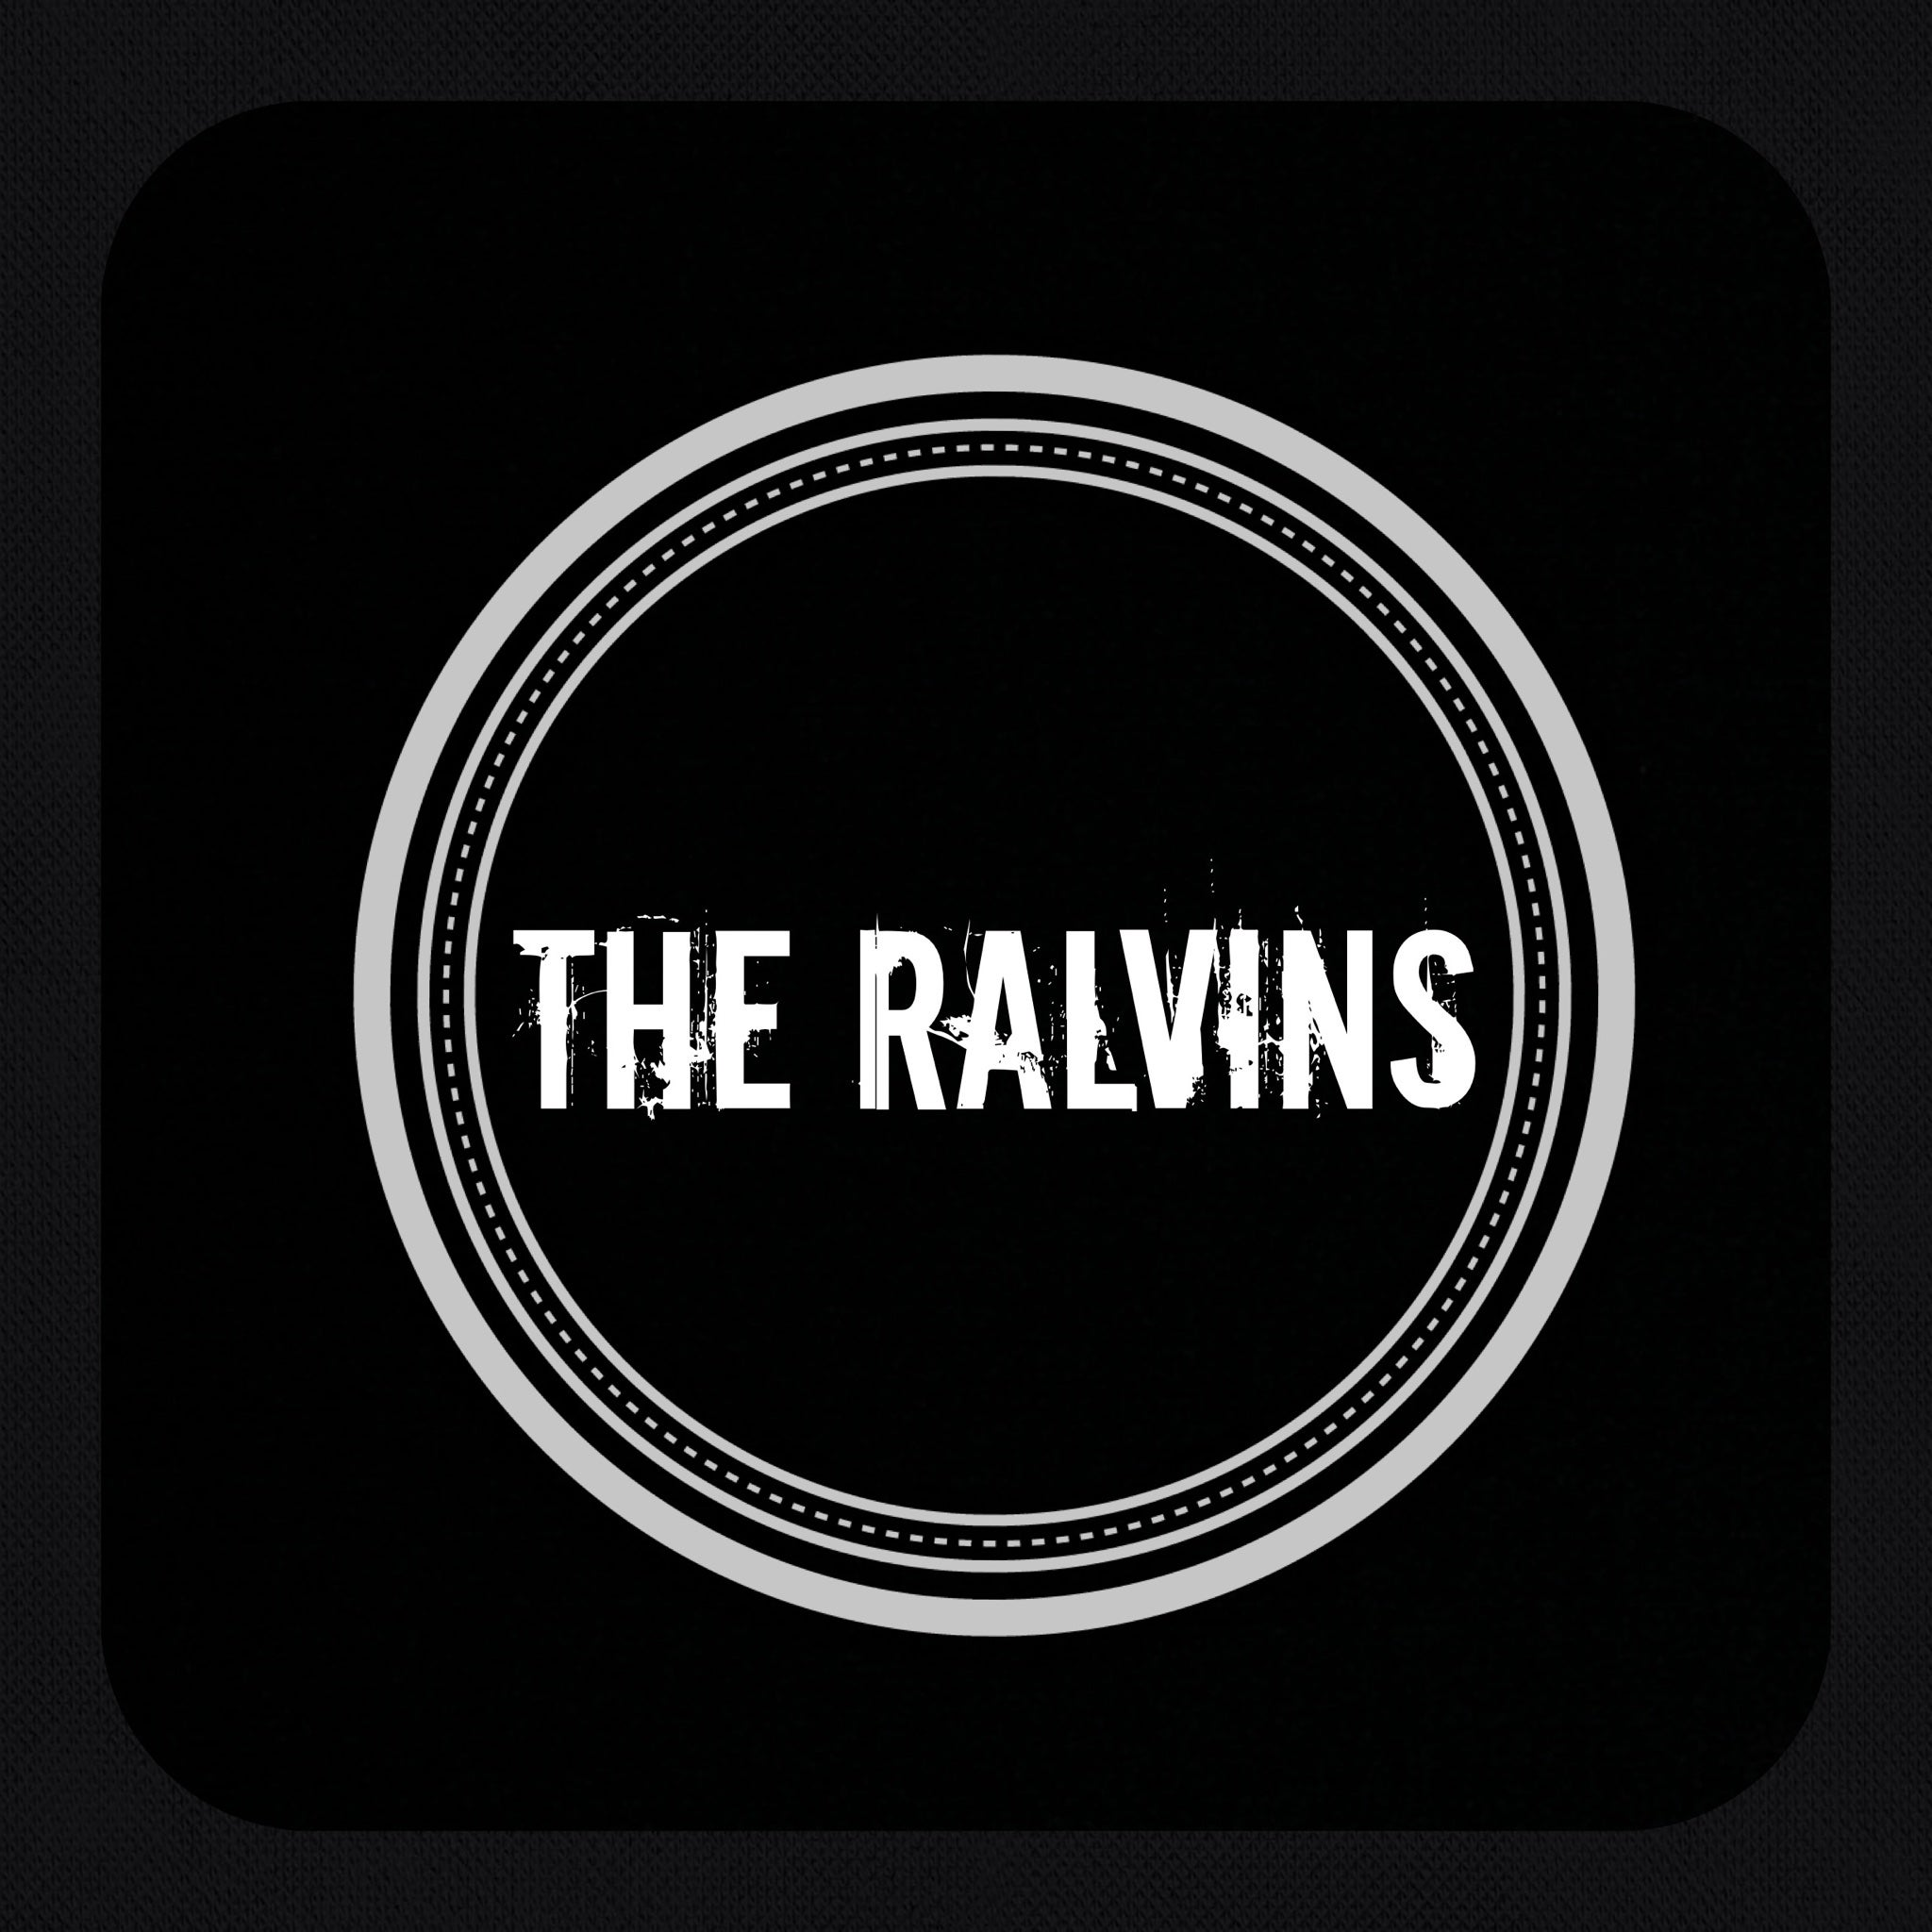 The Ralvins